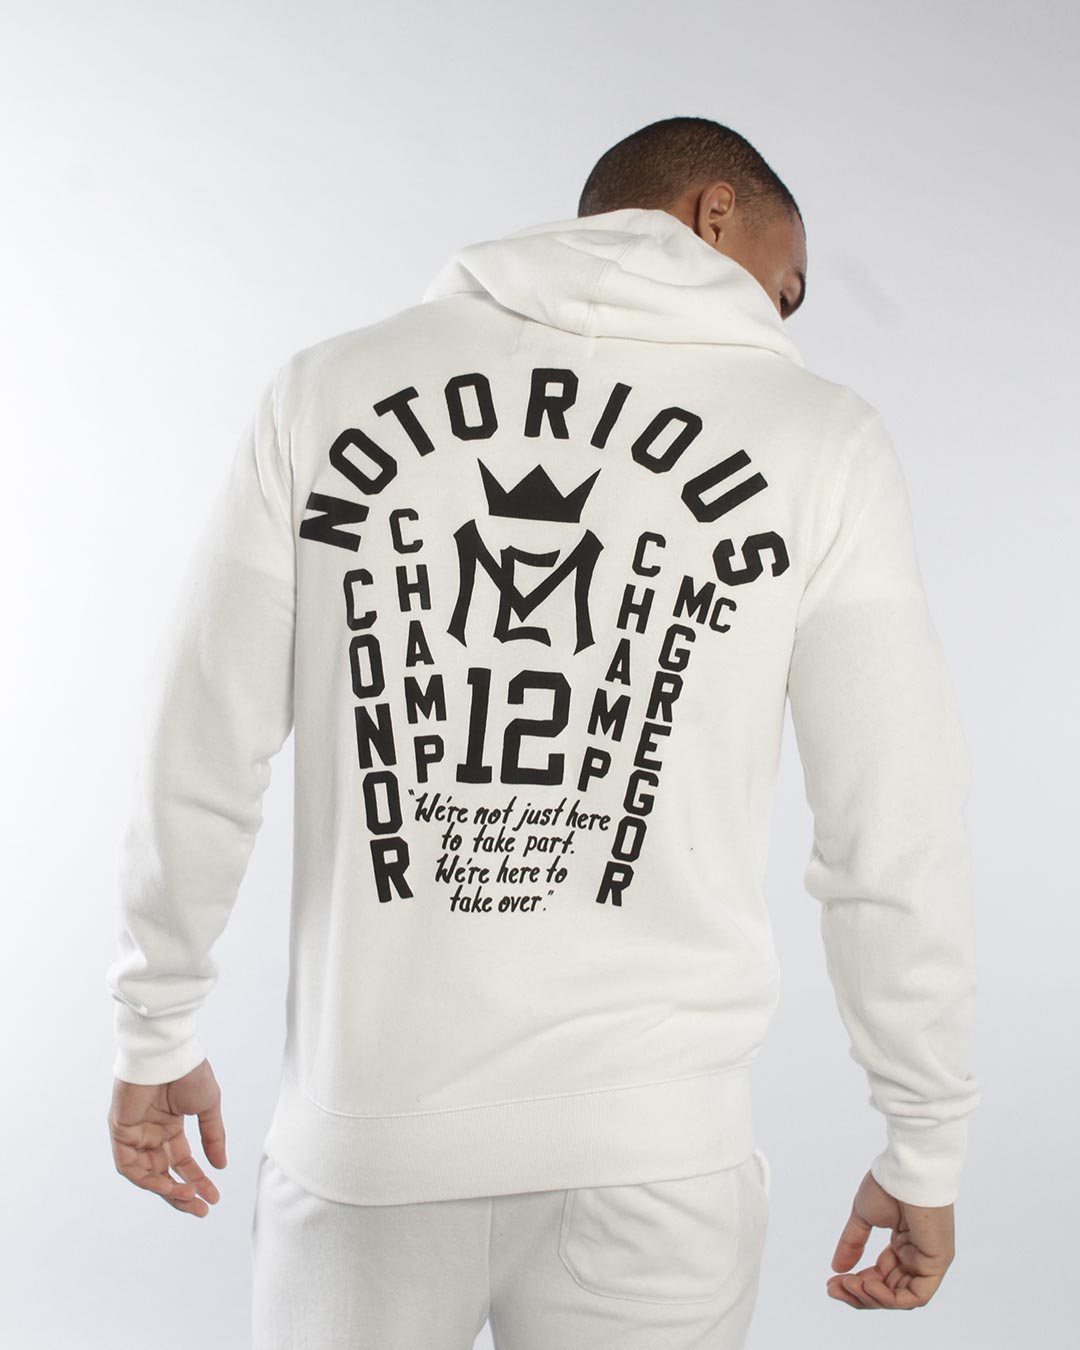 Conor McGregor Champ Champ Pullover Hoody - Roots of Inc dba Roots of Fight